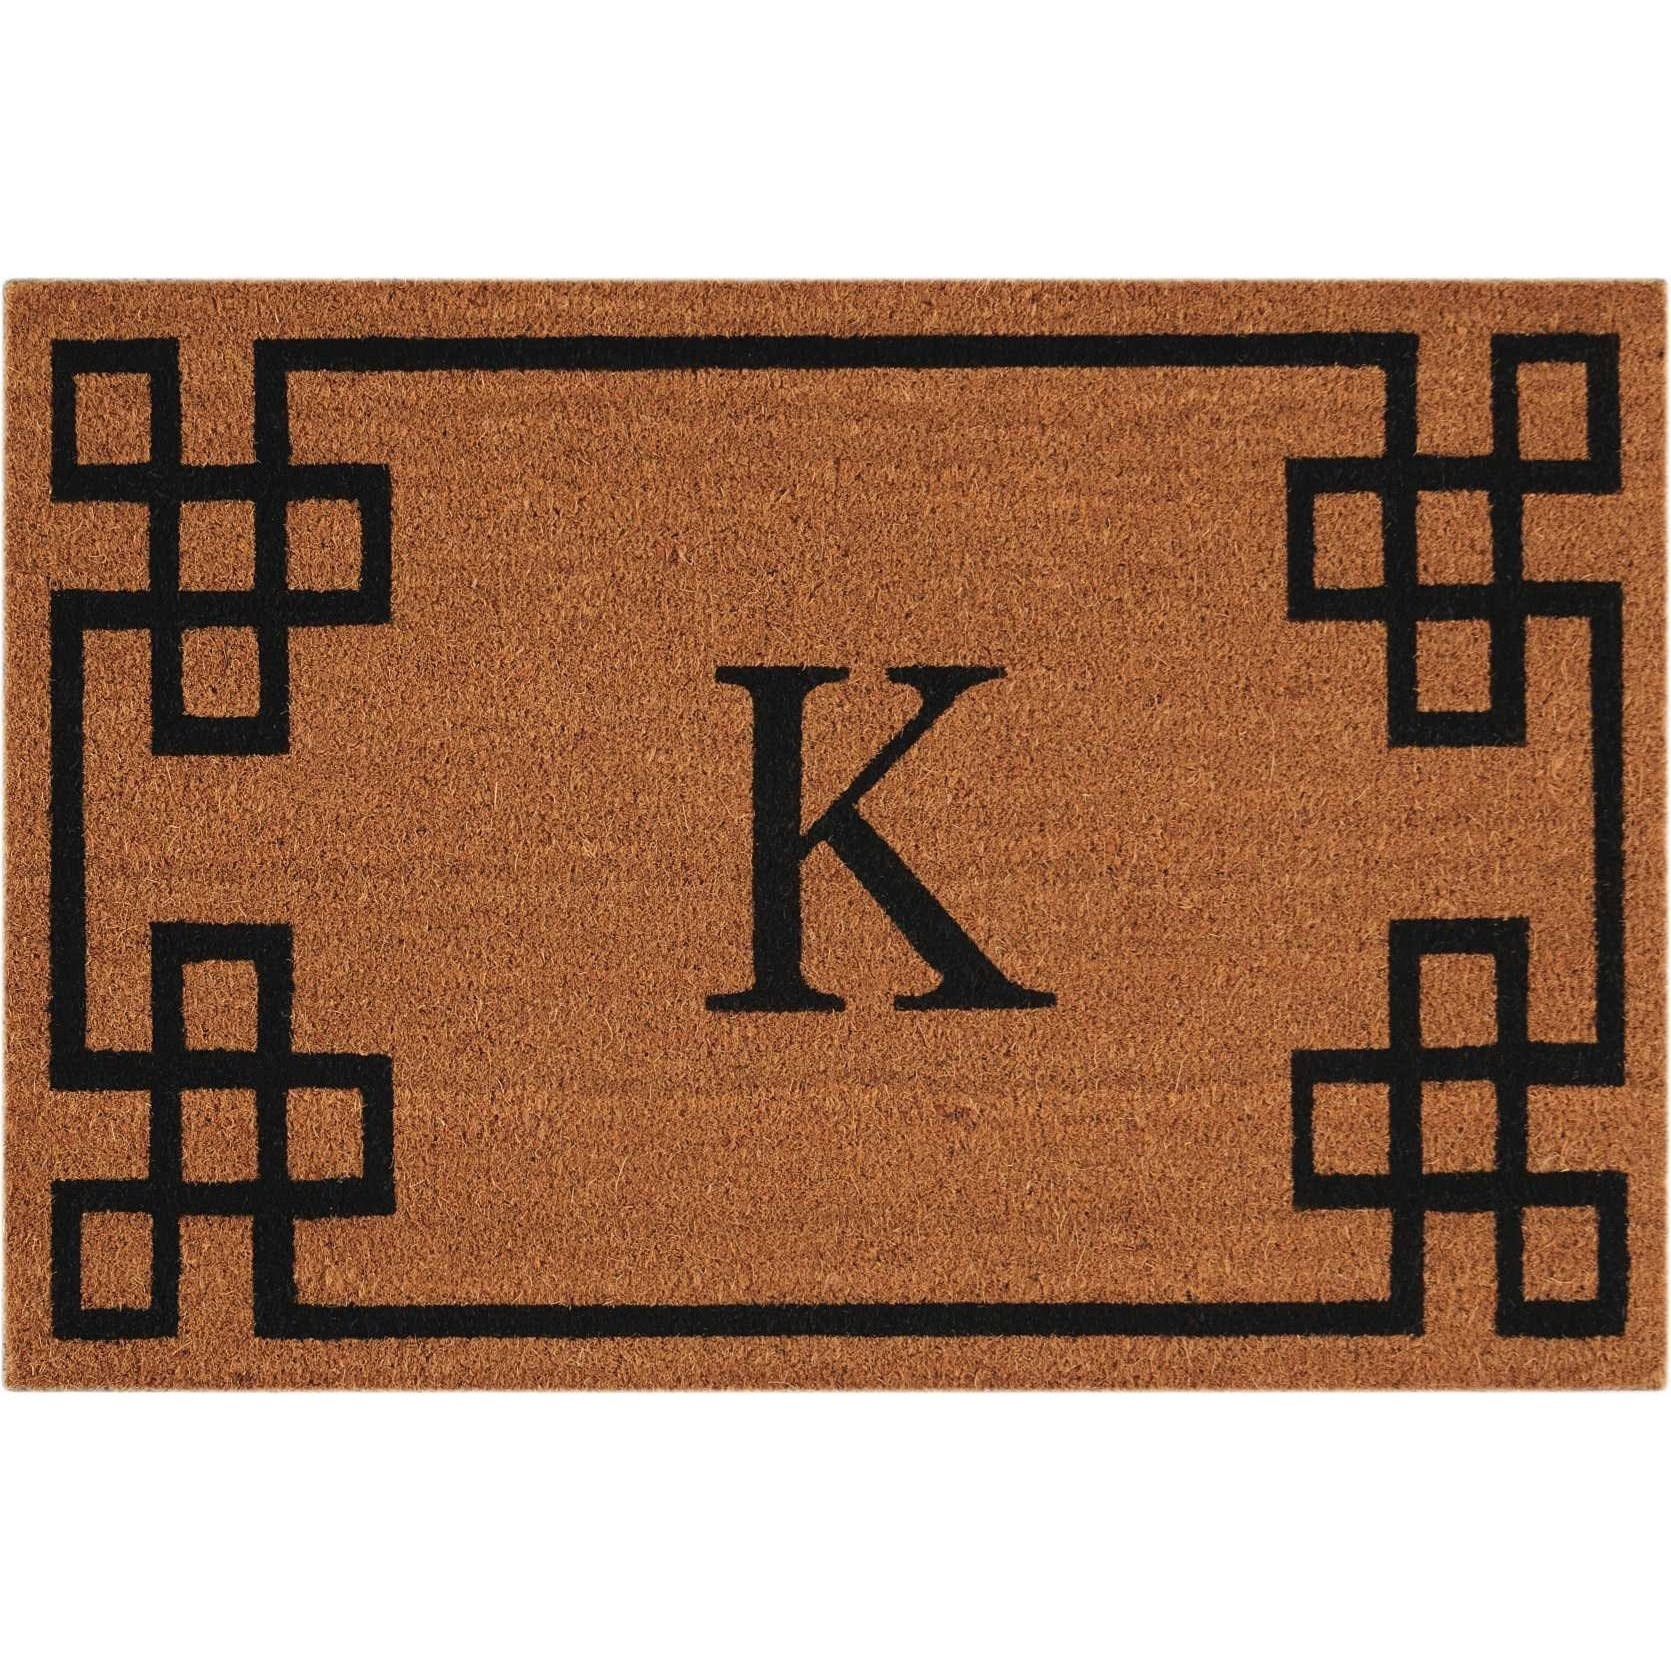 Elegant Entry 2' x 3' Natural Rectangle Rug by Nourison at Home Collections Furniture